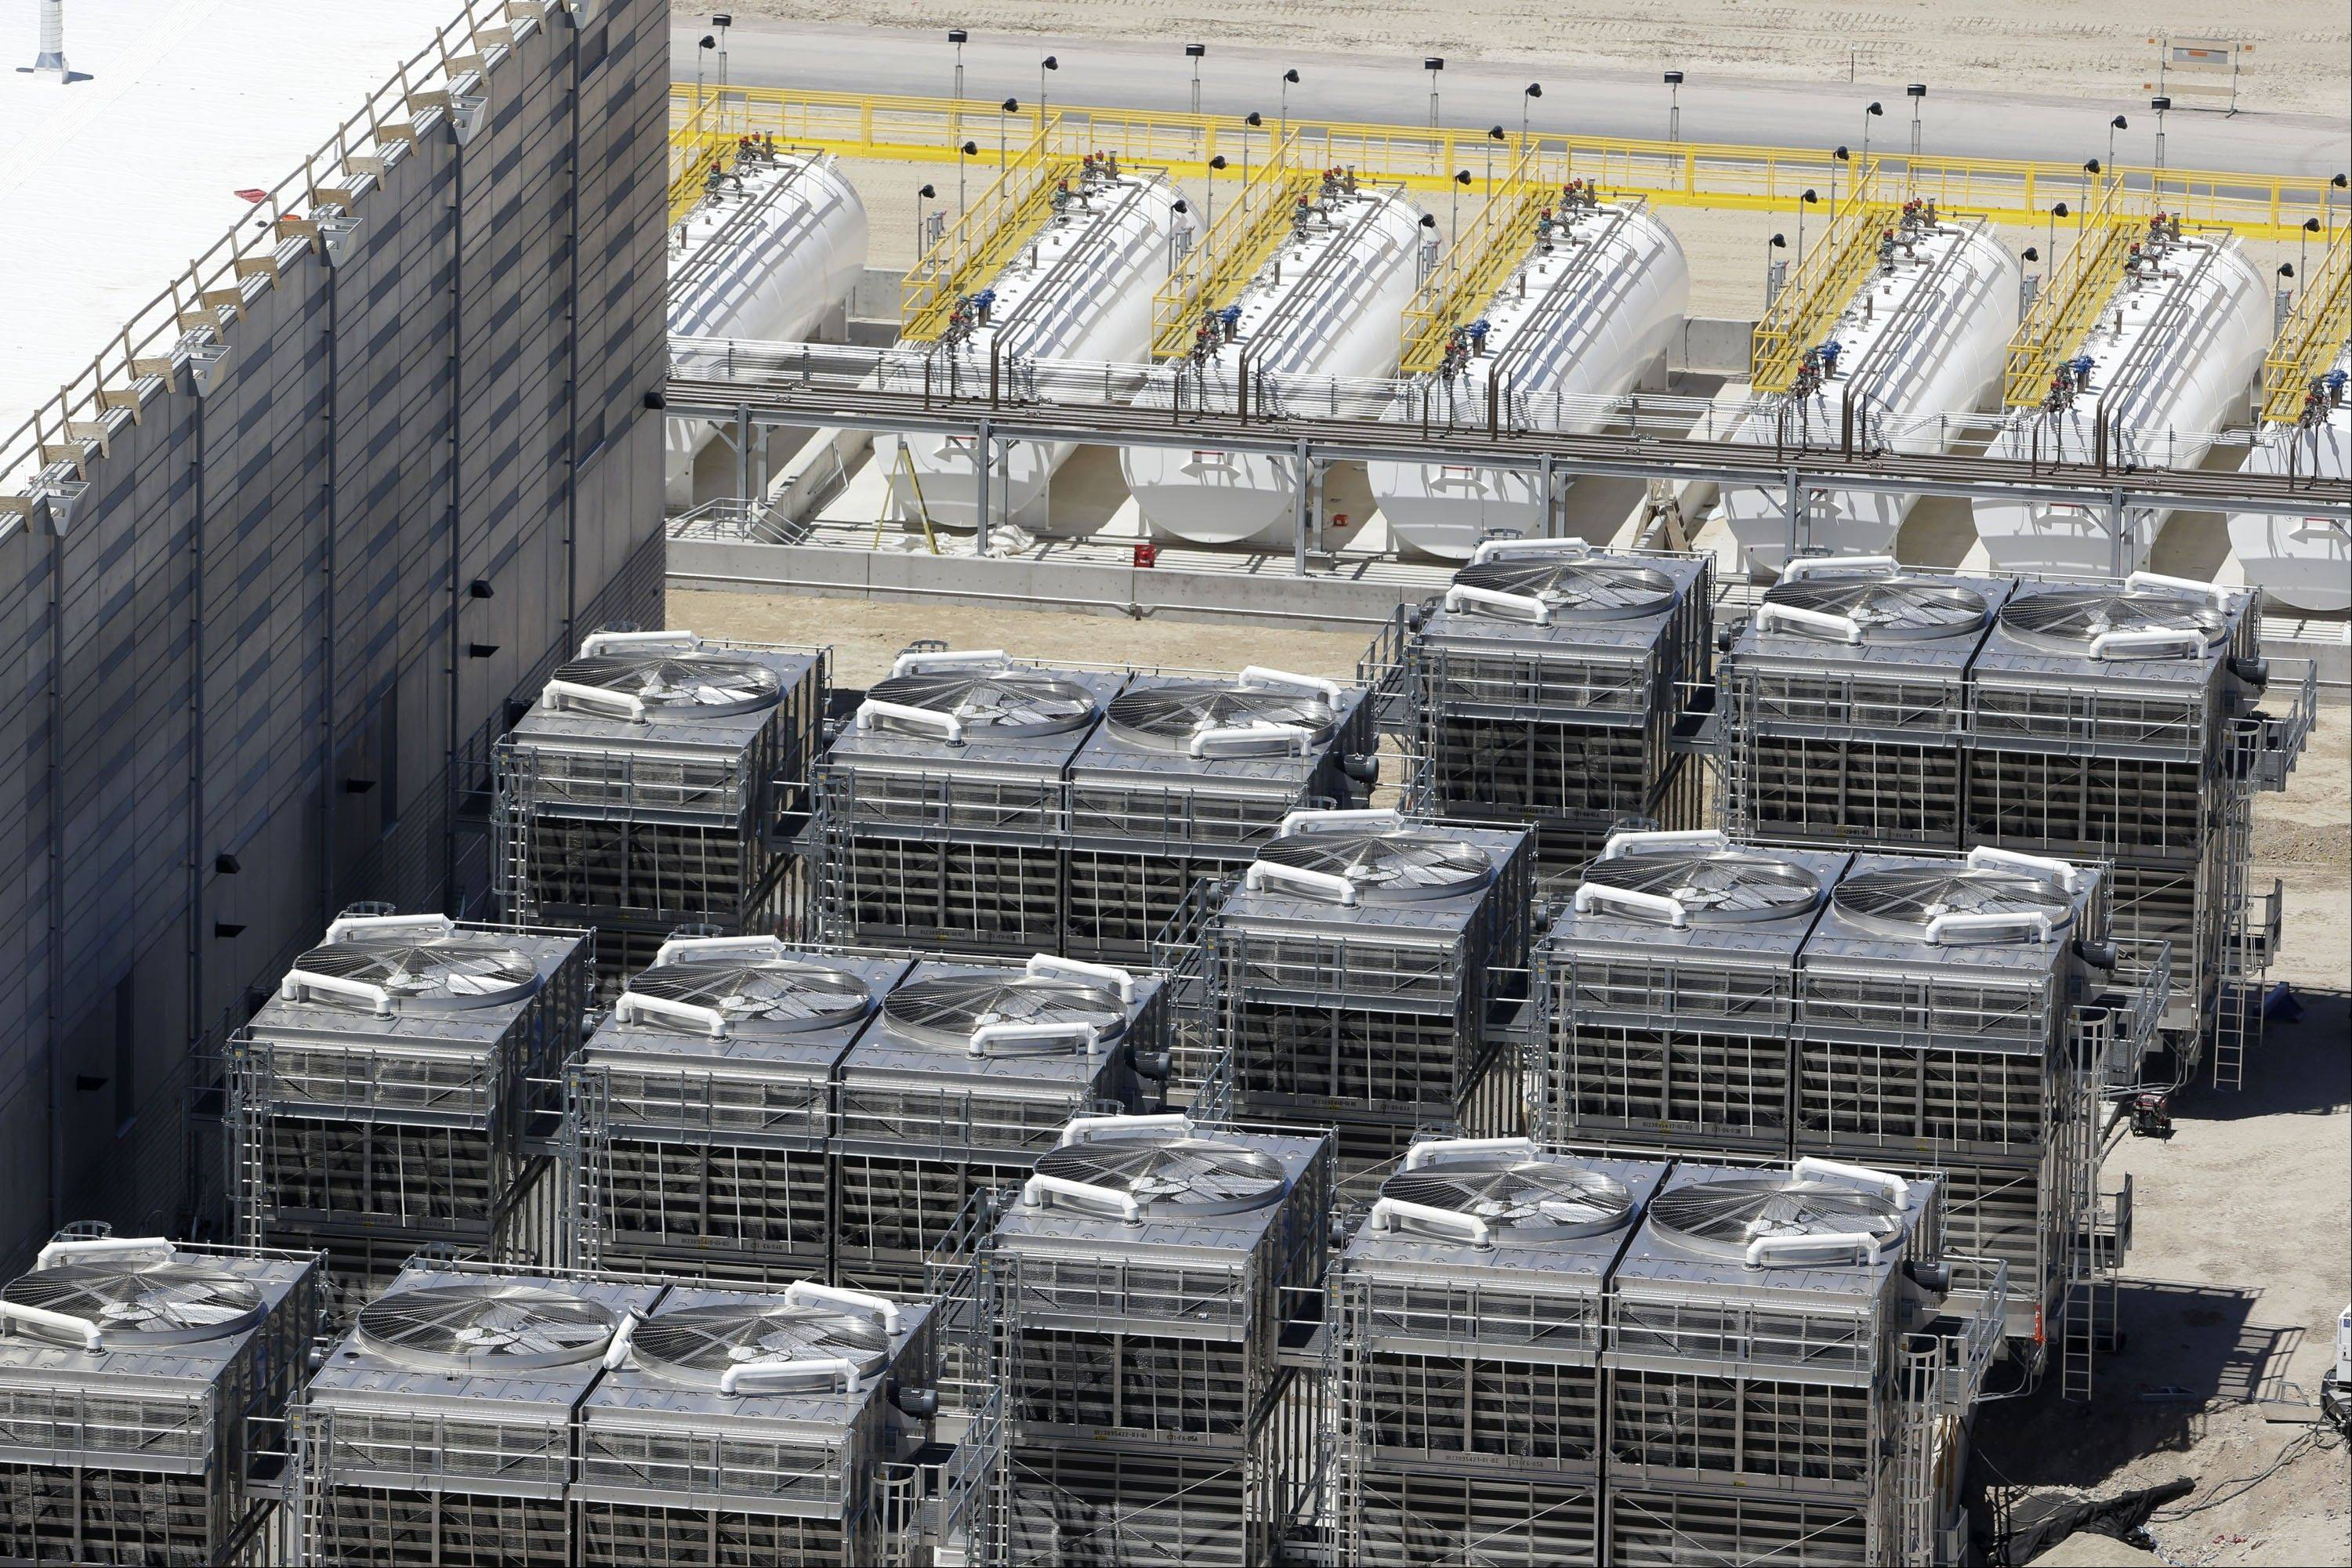 Associated Press/June 6, 2013An aerial view of the cooling units at the NSA's Utah Data Center in Bluffdale, Utah.